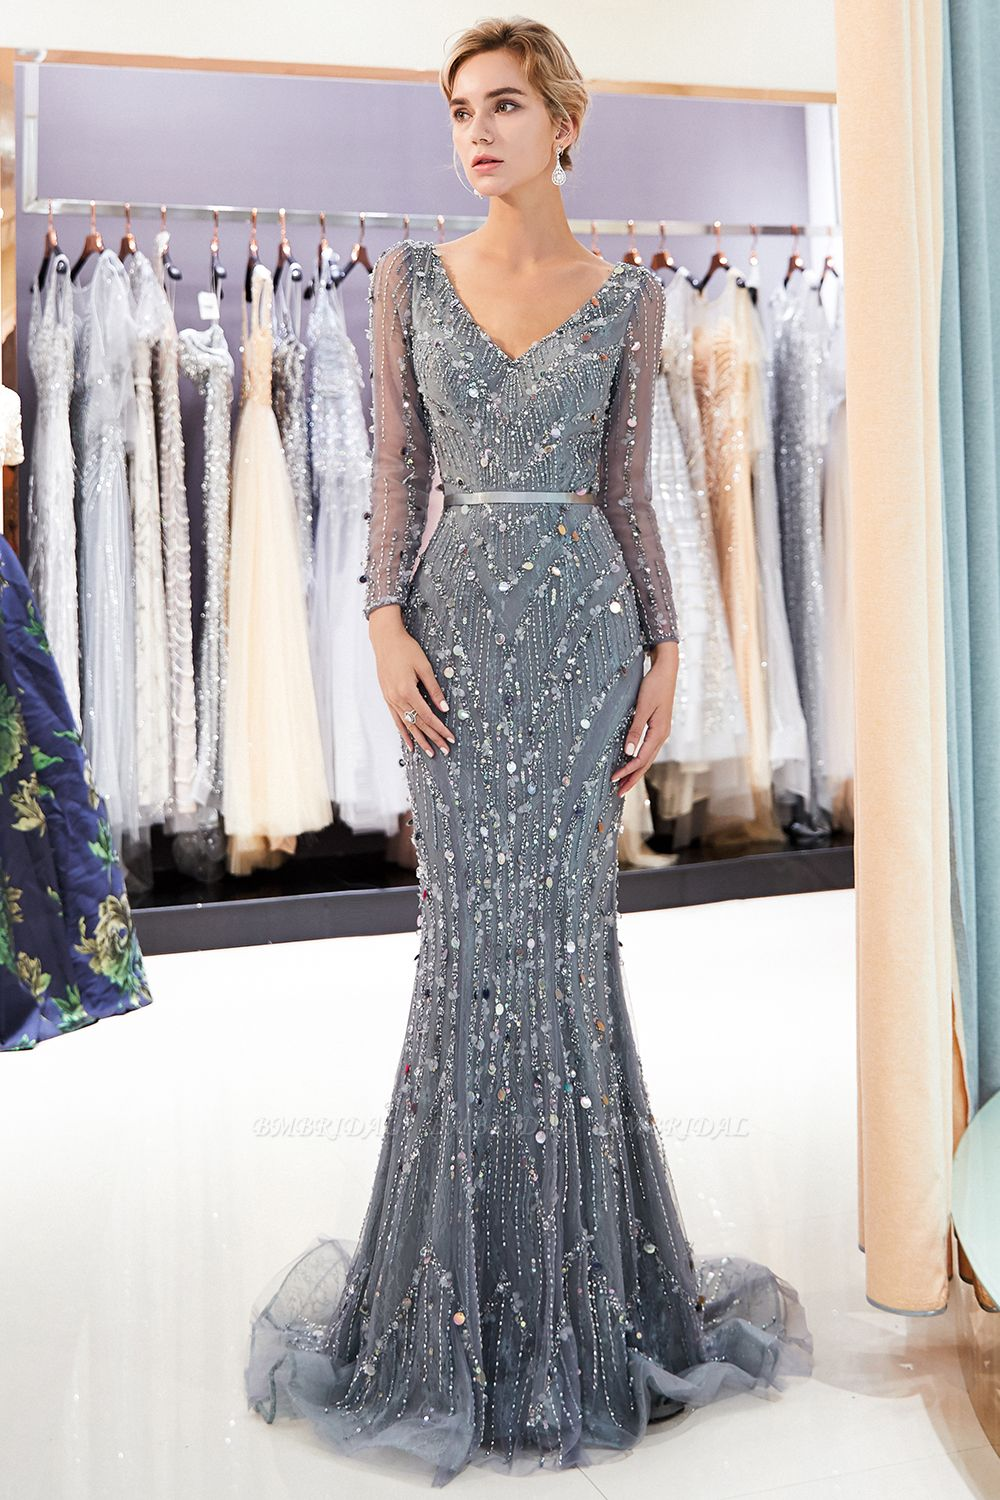 BMbridal Chic Mermaid Long Sleeves Prom Dresses V-neck Sequins Evening Gowns with Sash